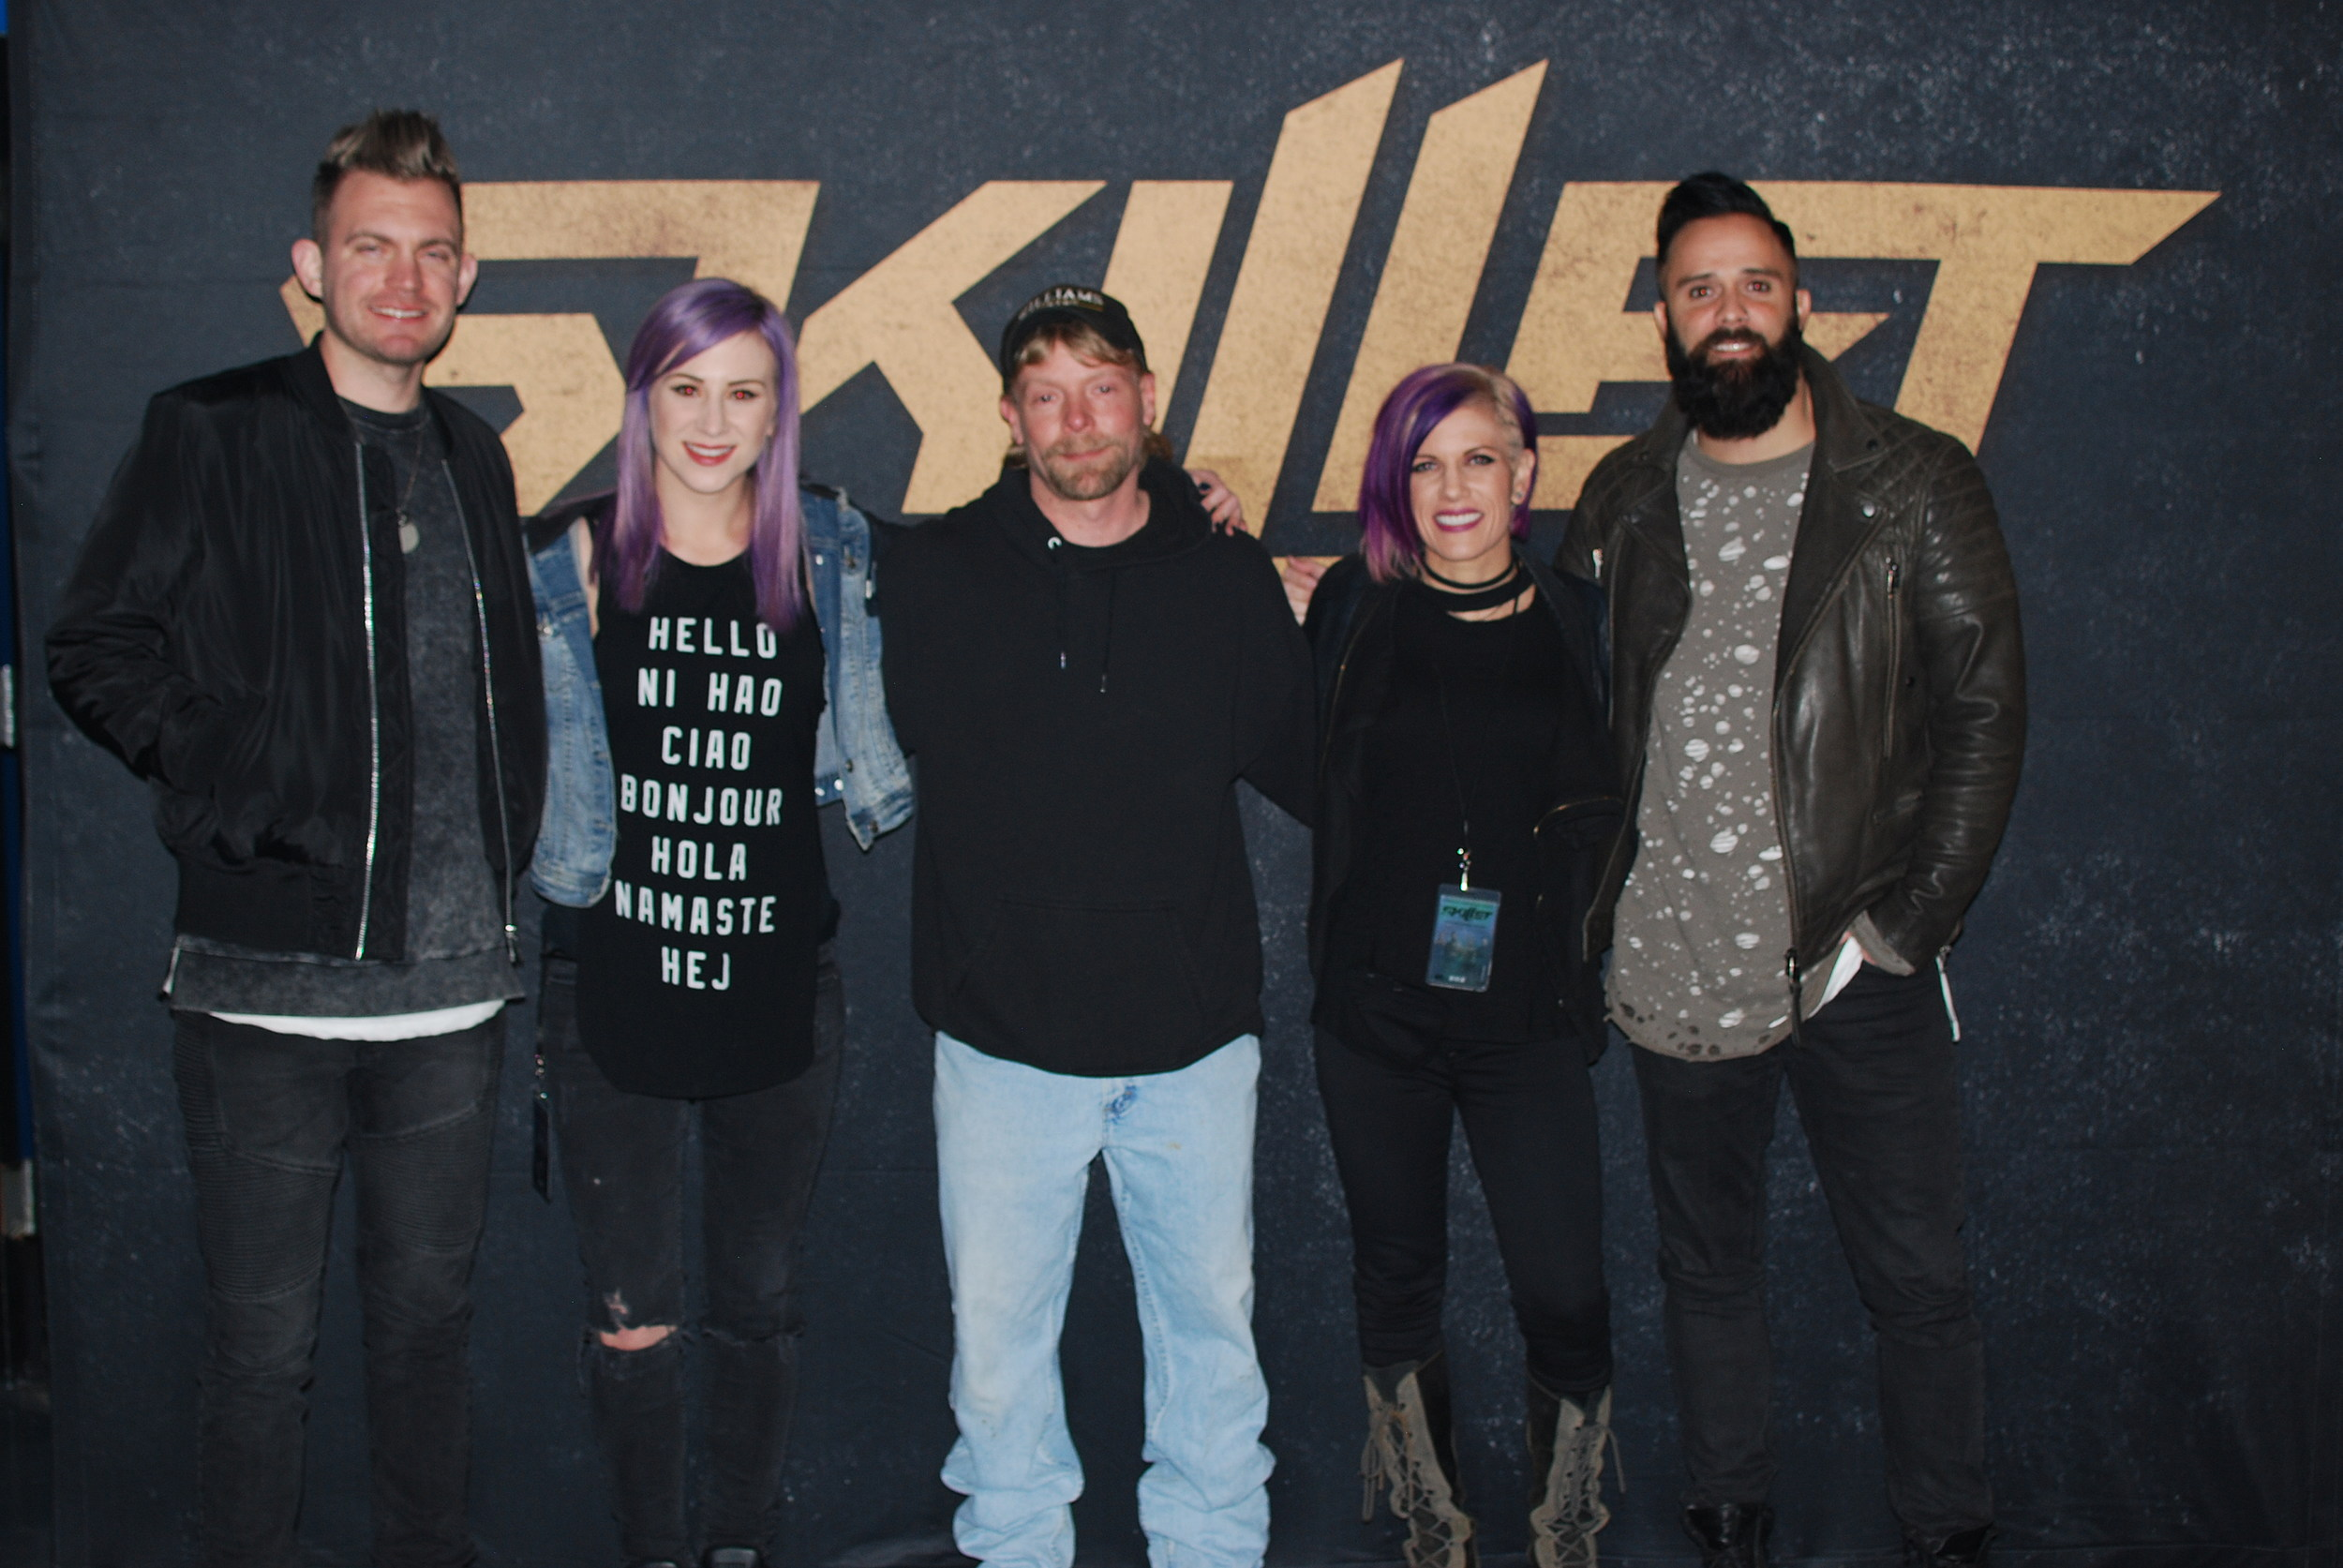 Skillet Meet And Greet Photos